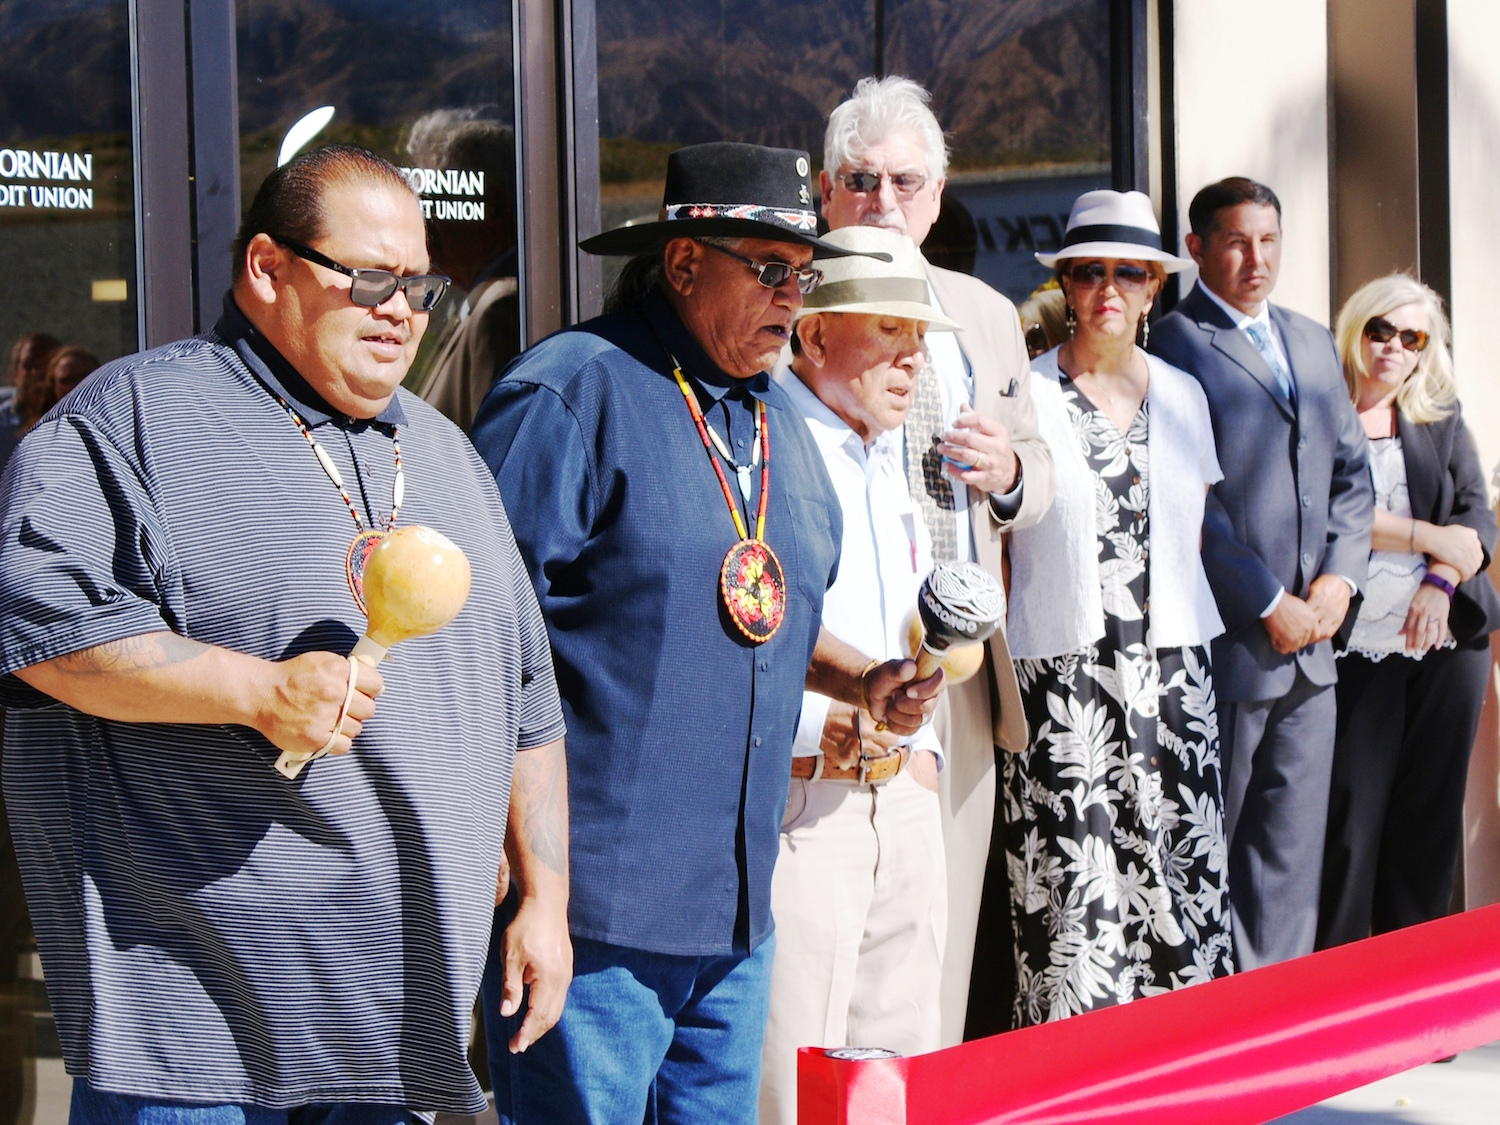 Morongo Band opens new office for First Californian Credit Union